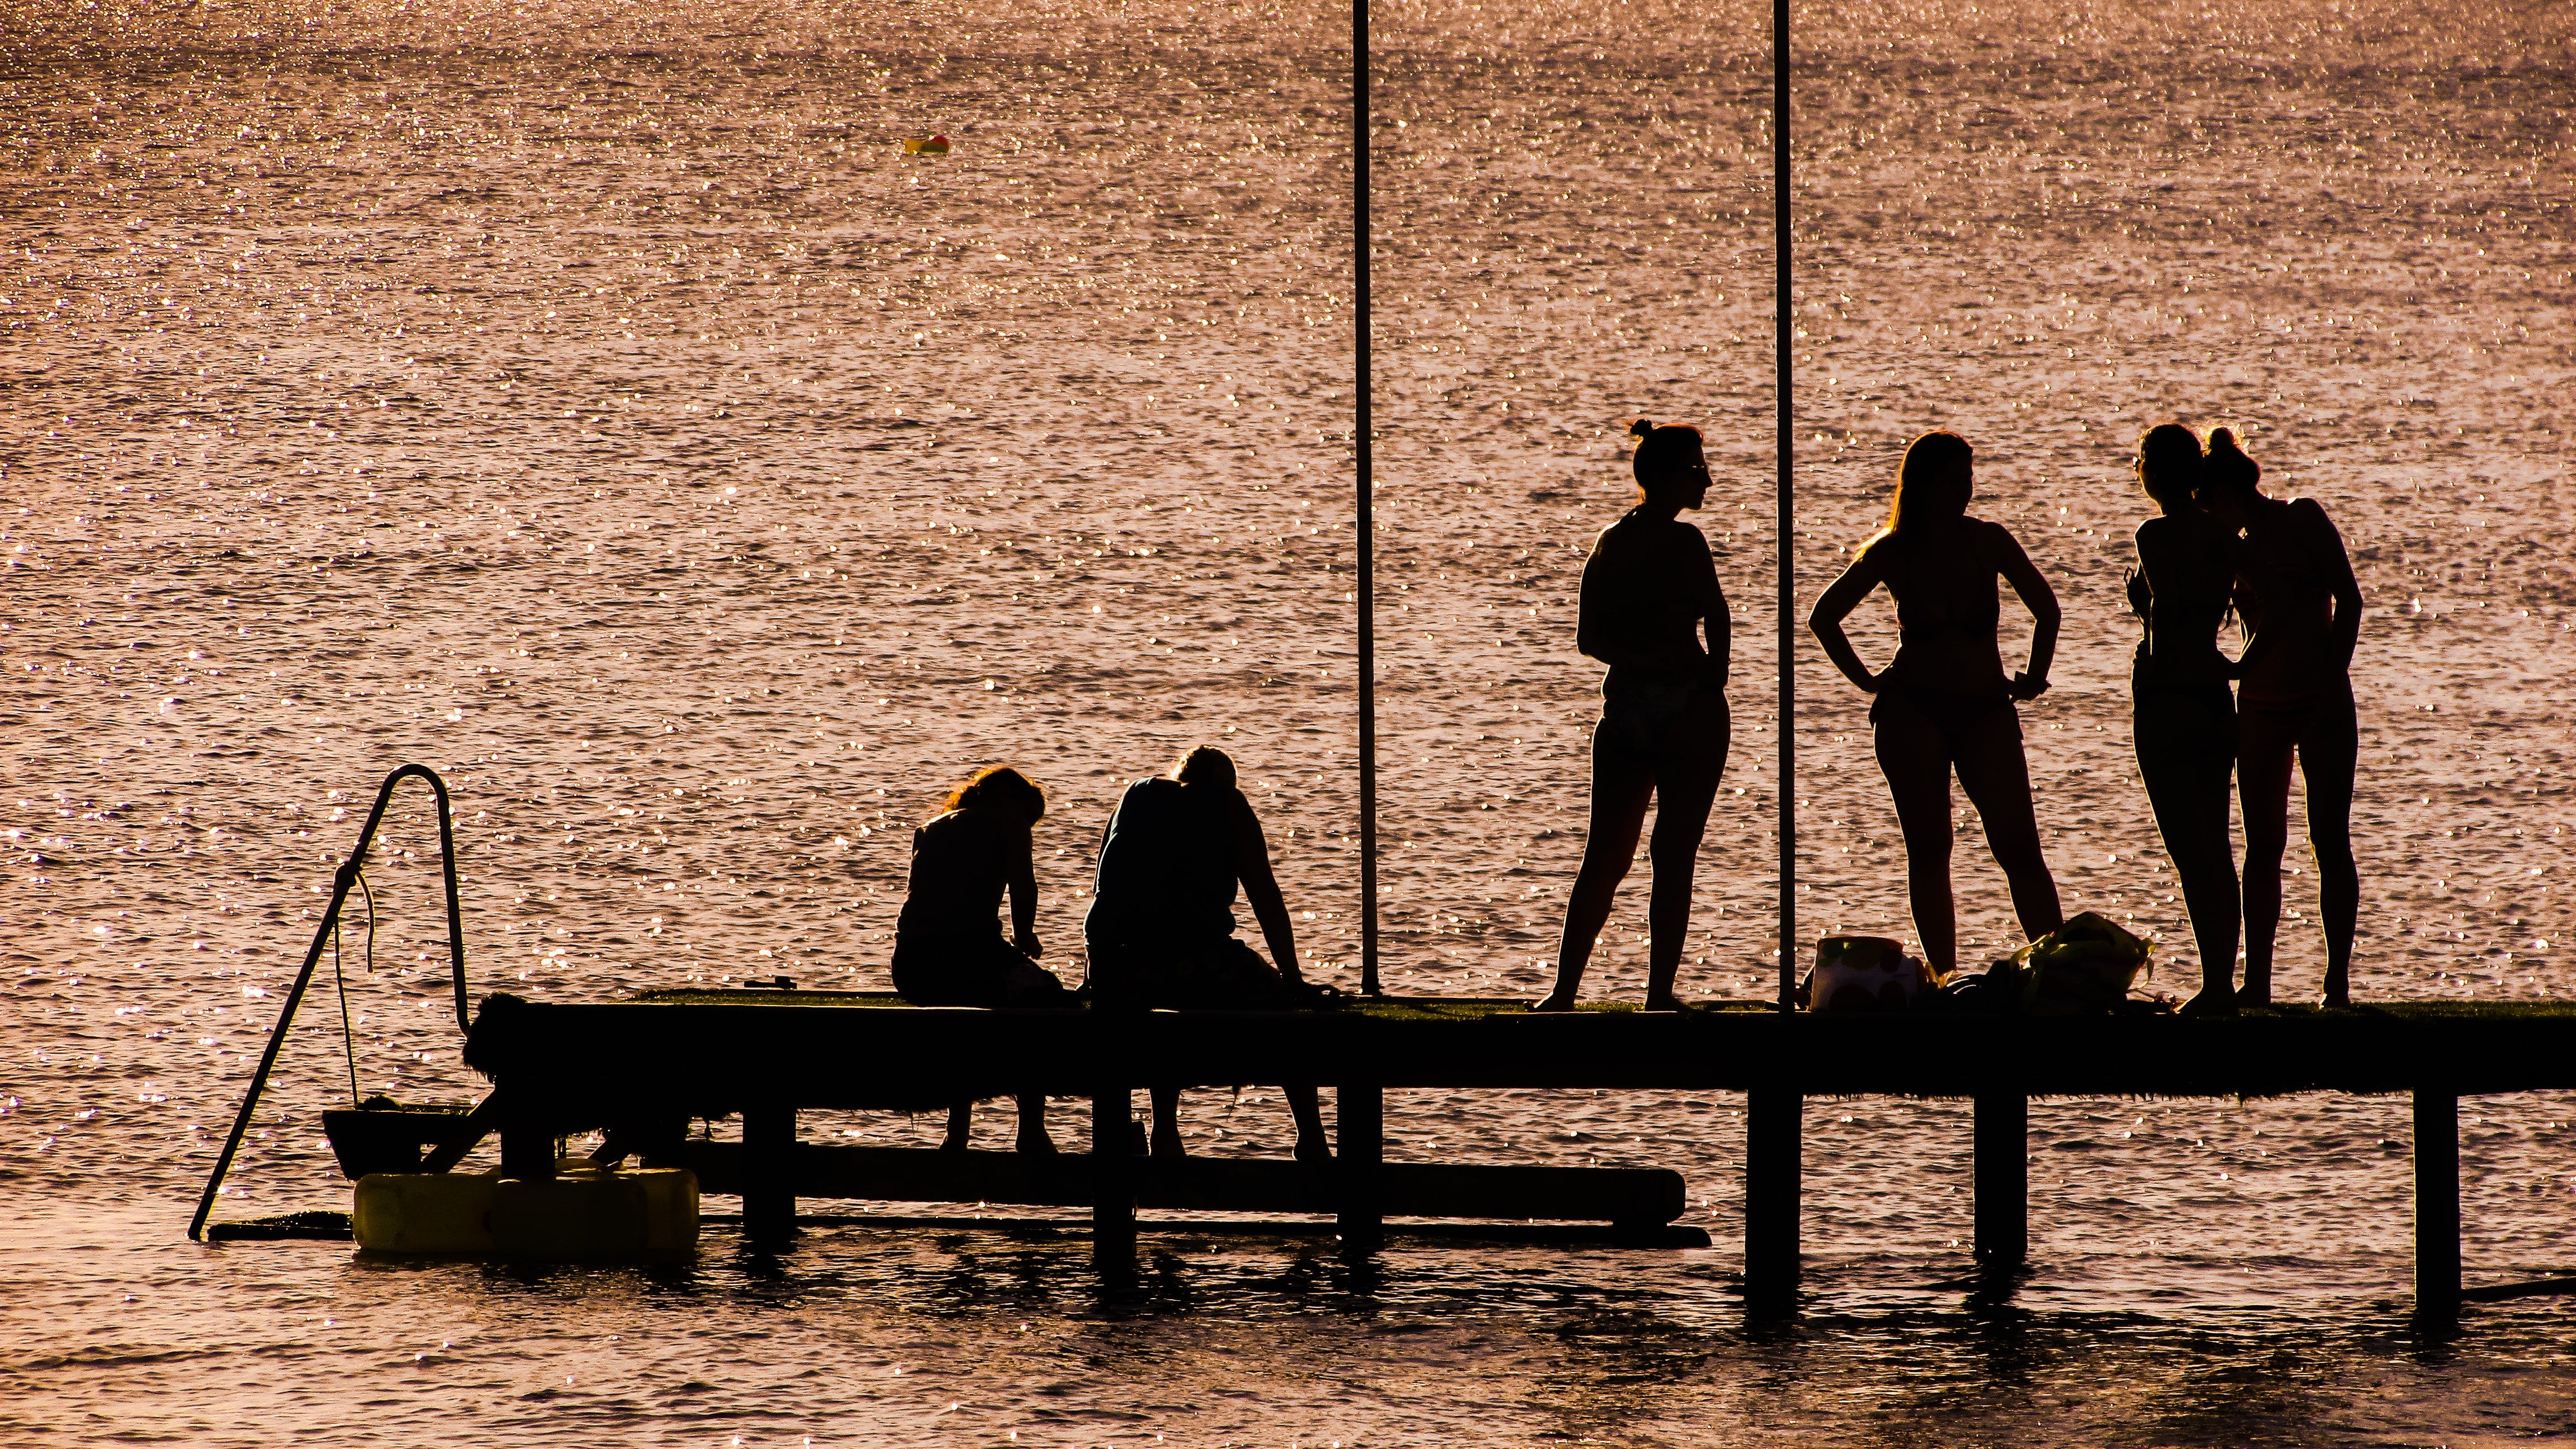 Silhouette of 6 Person on Dock Near the Calm Body of Water